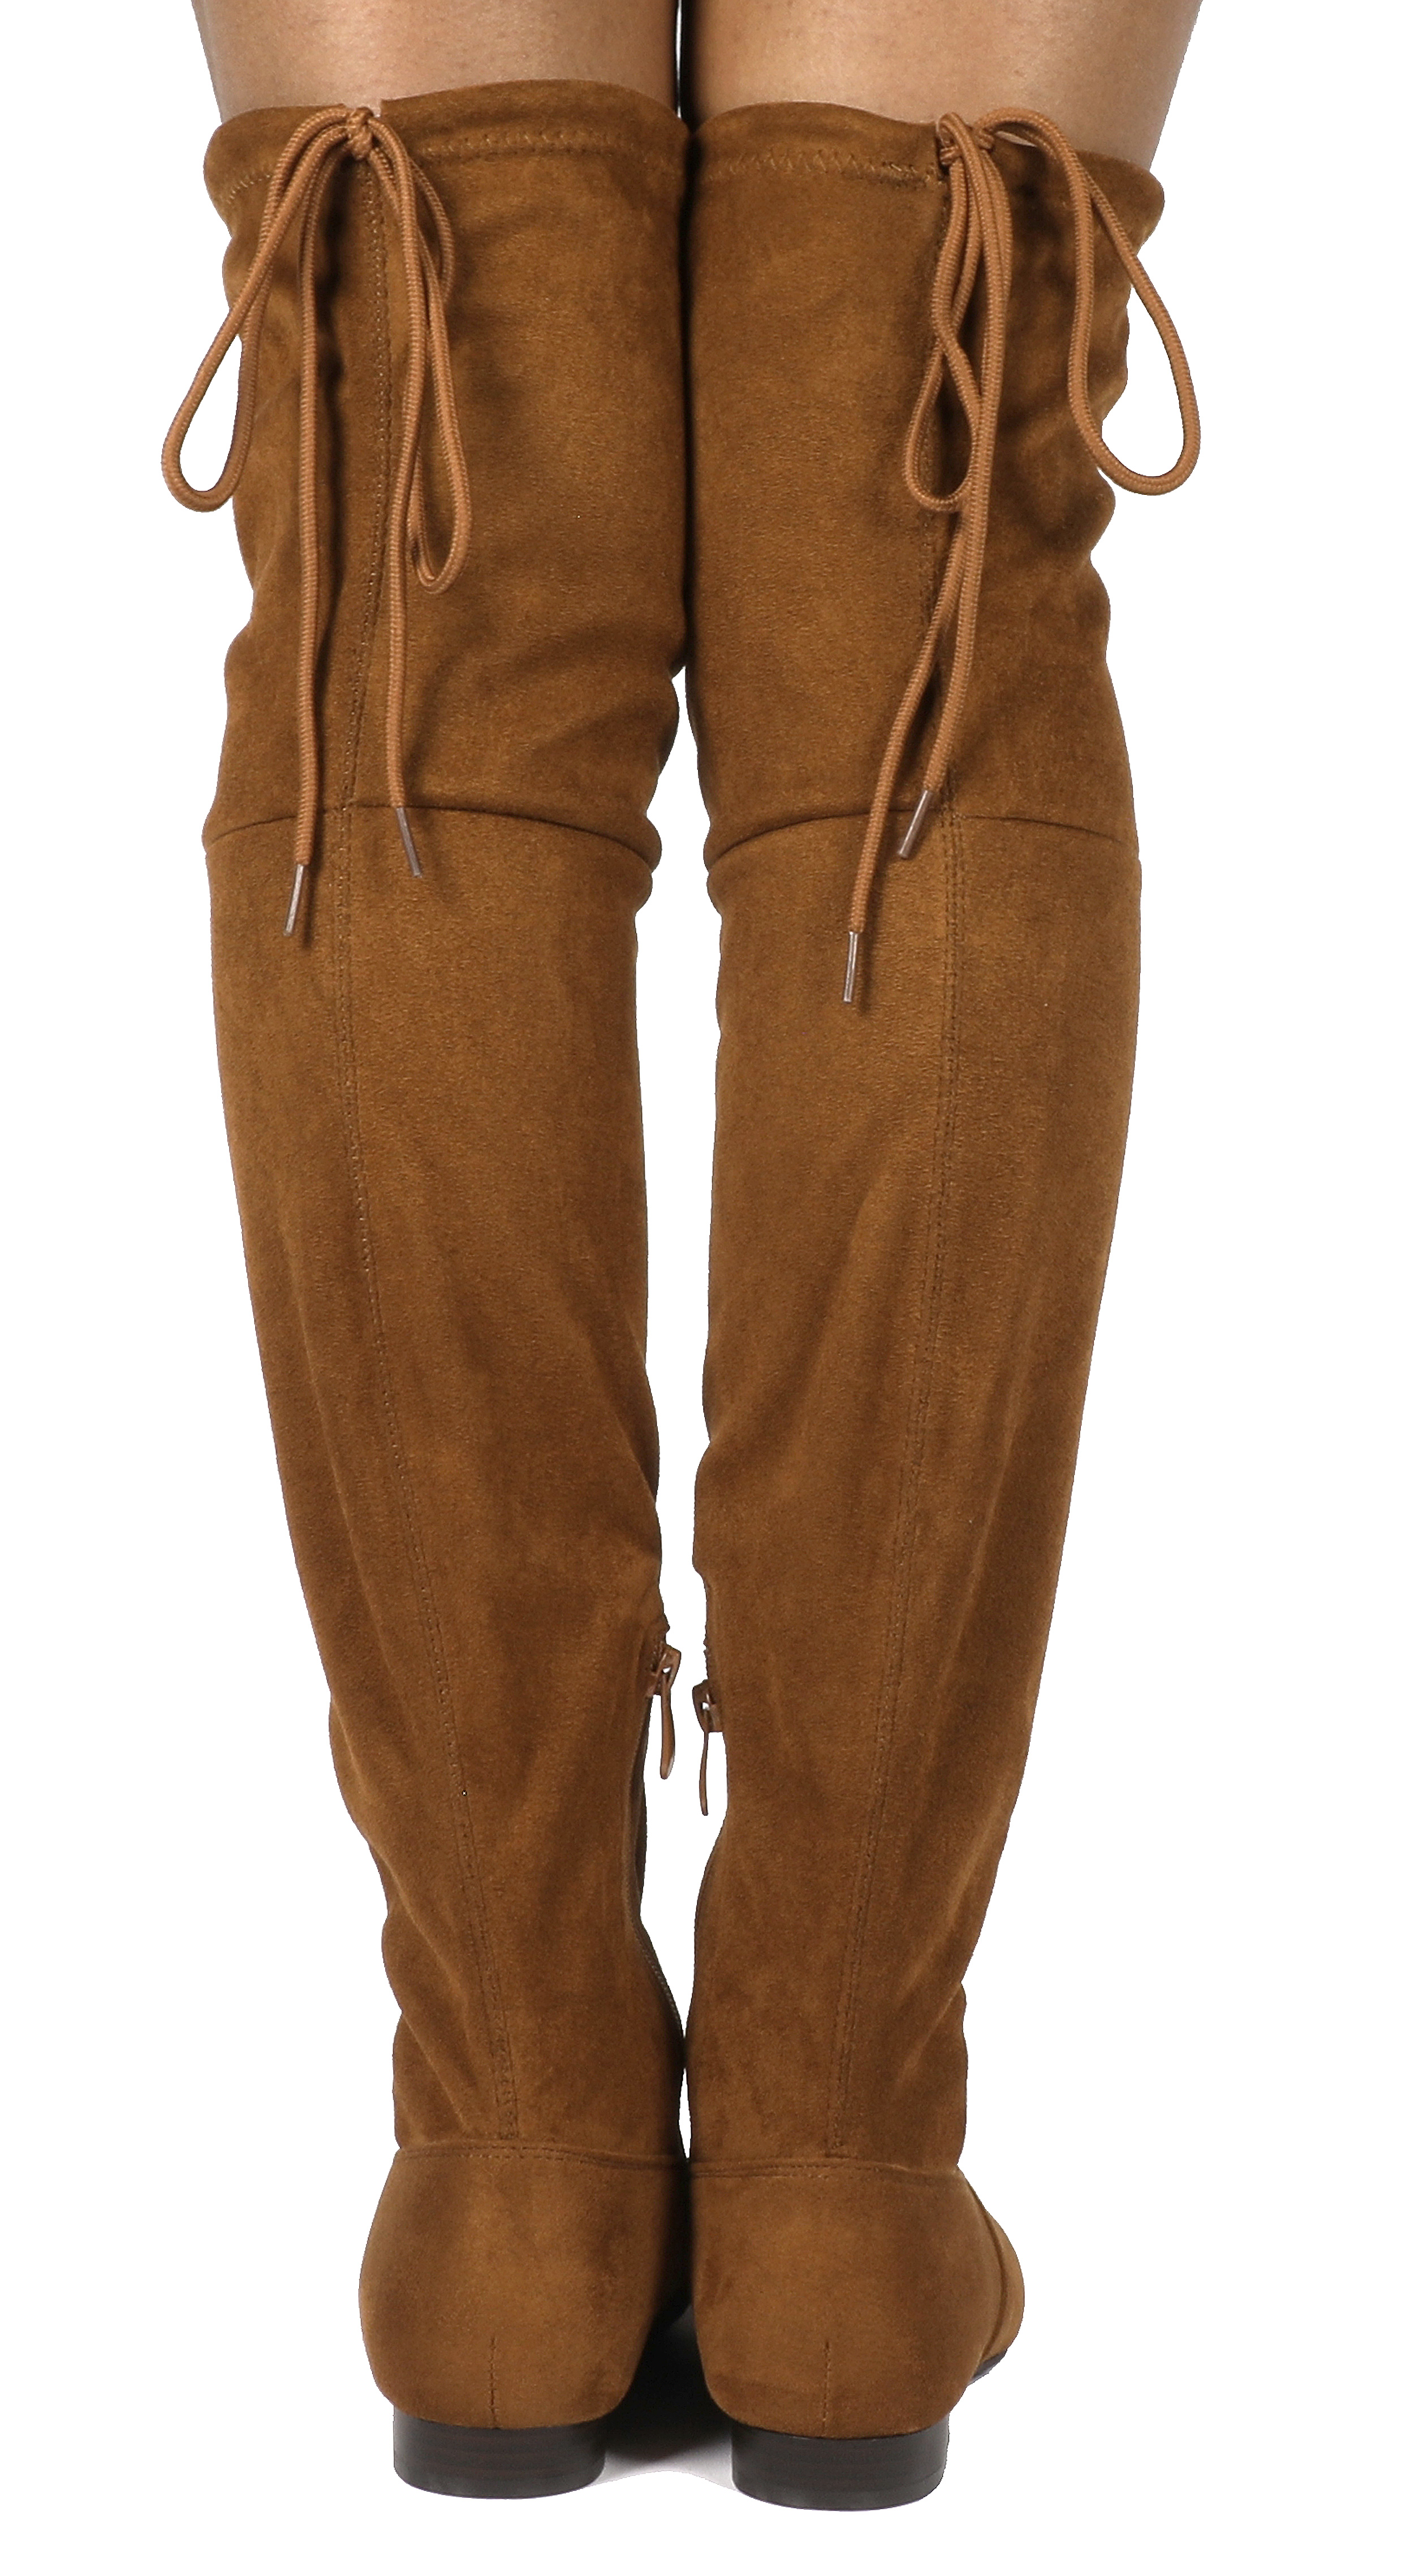 Women-Thigh-High-Flat-Boots-Stretchy-Drawstring-Tie-Fashion-Over-The-Knee-Boots miniatuur 16